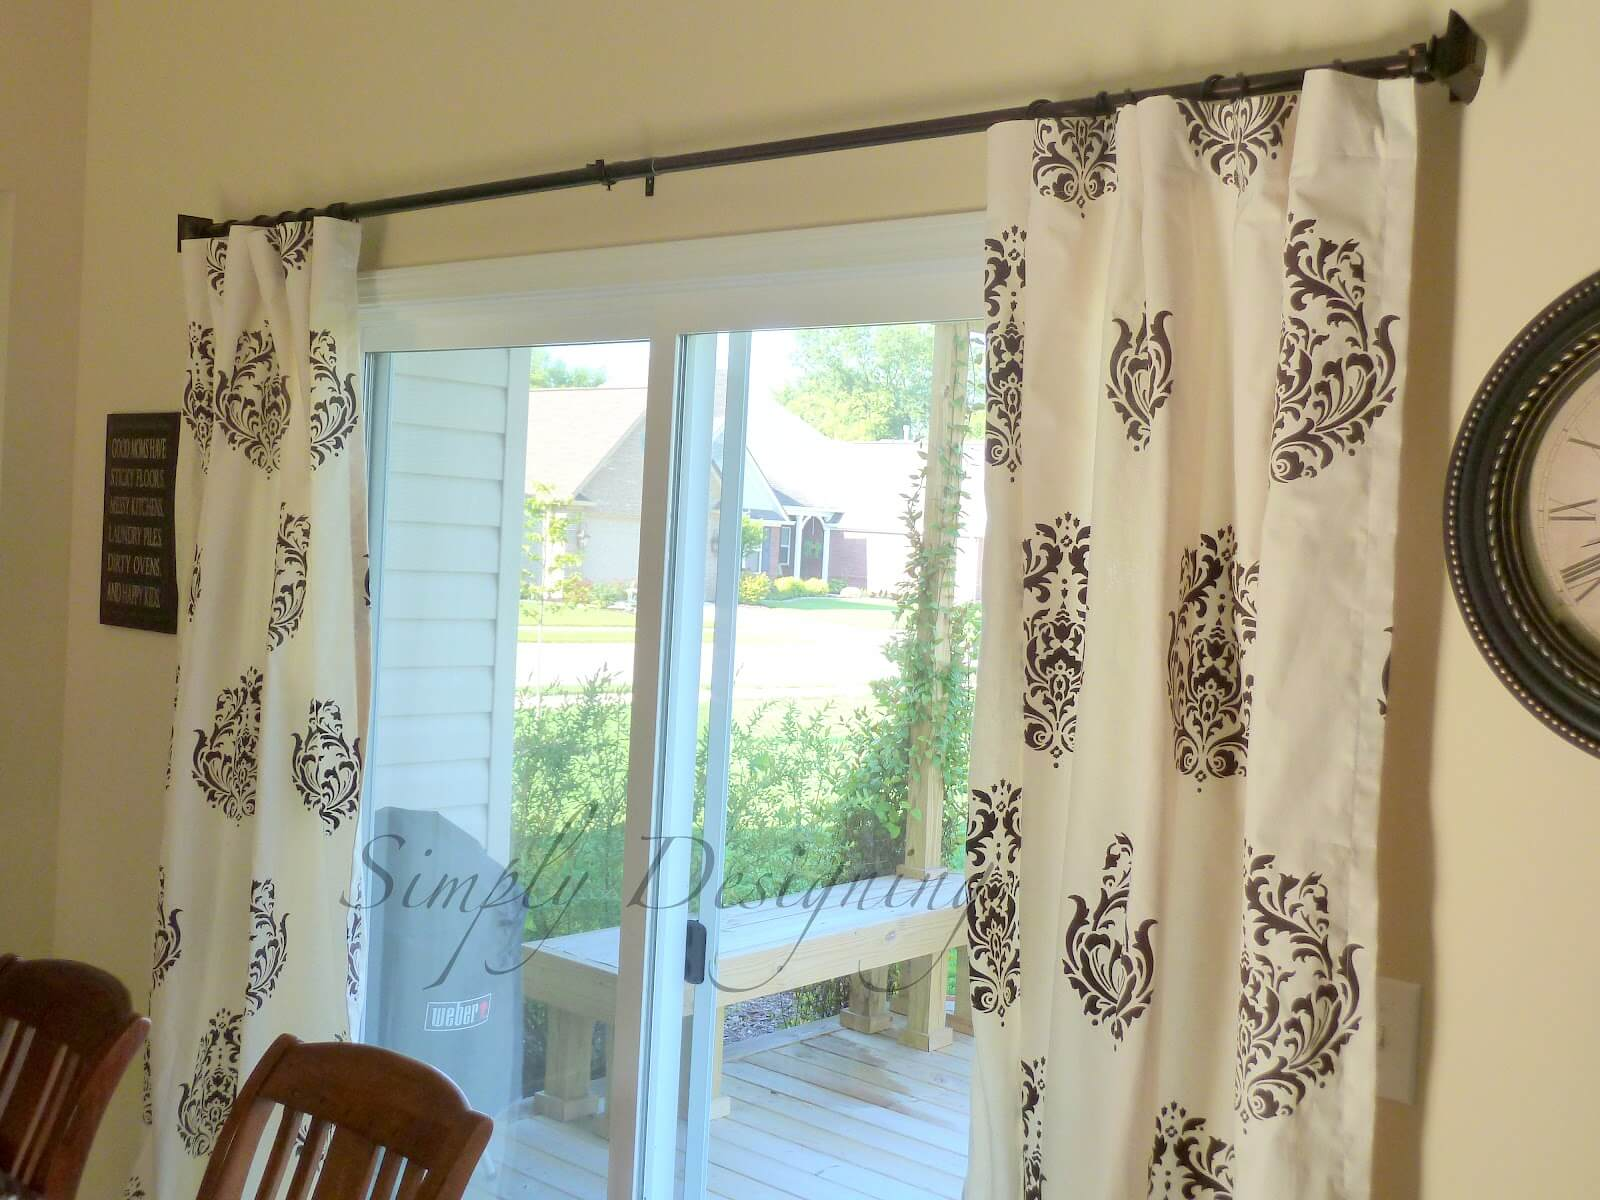 Stenciled in window curtains